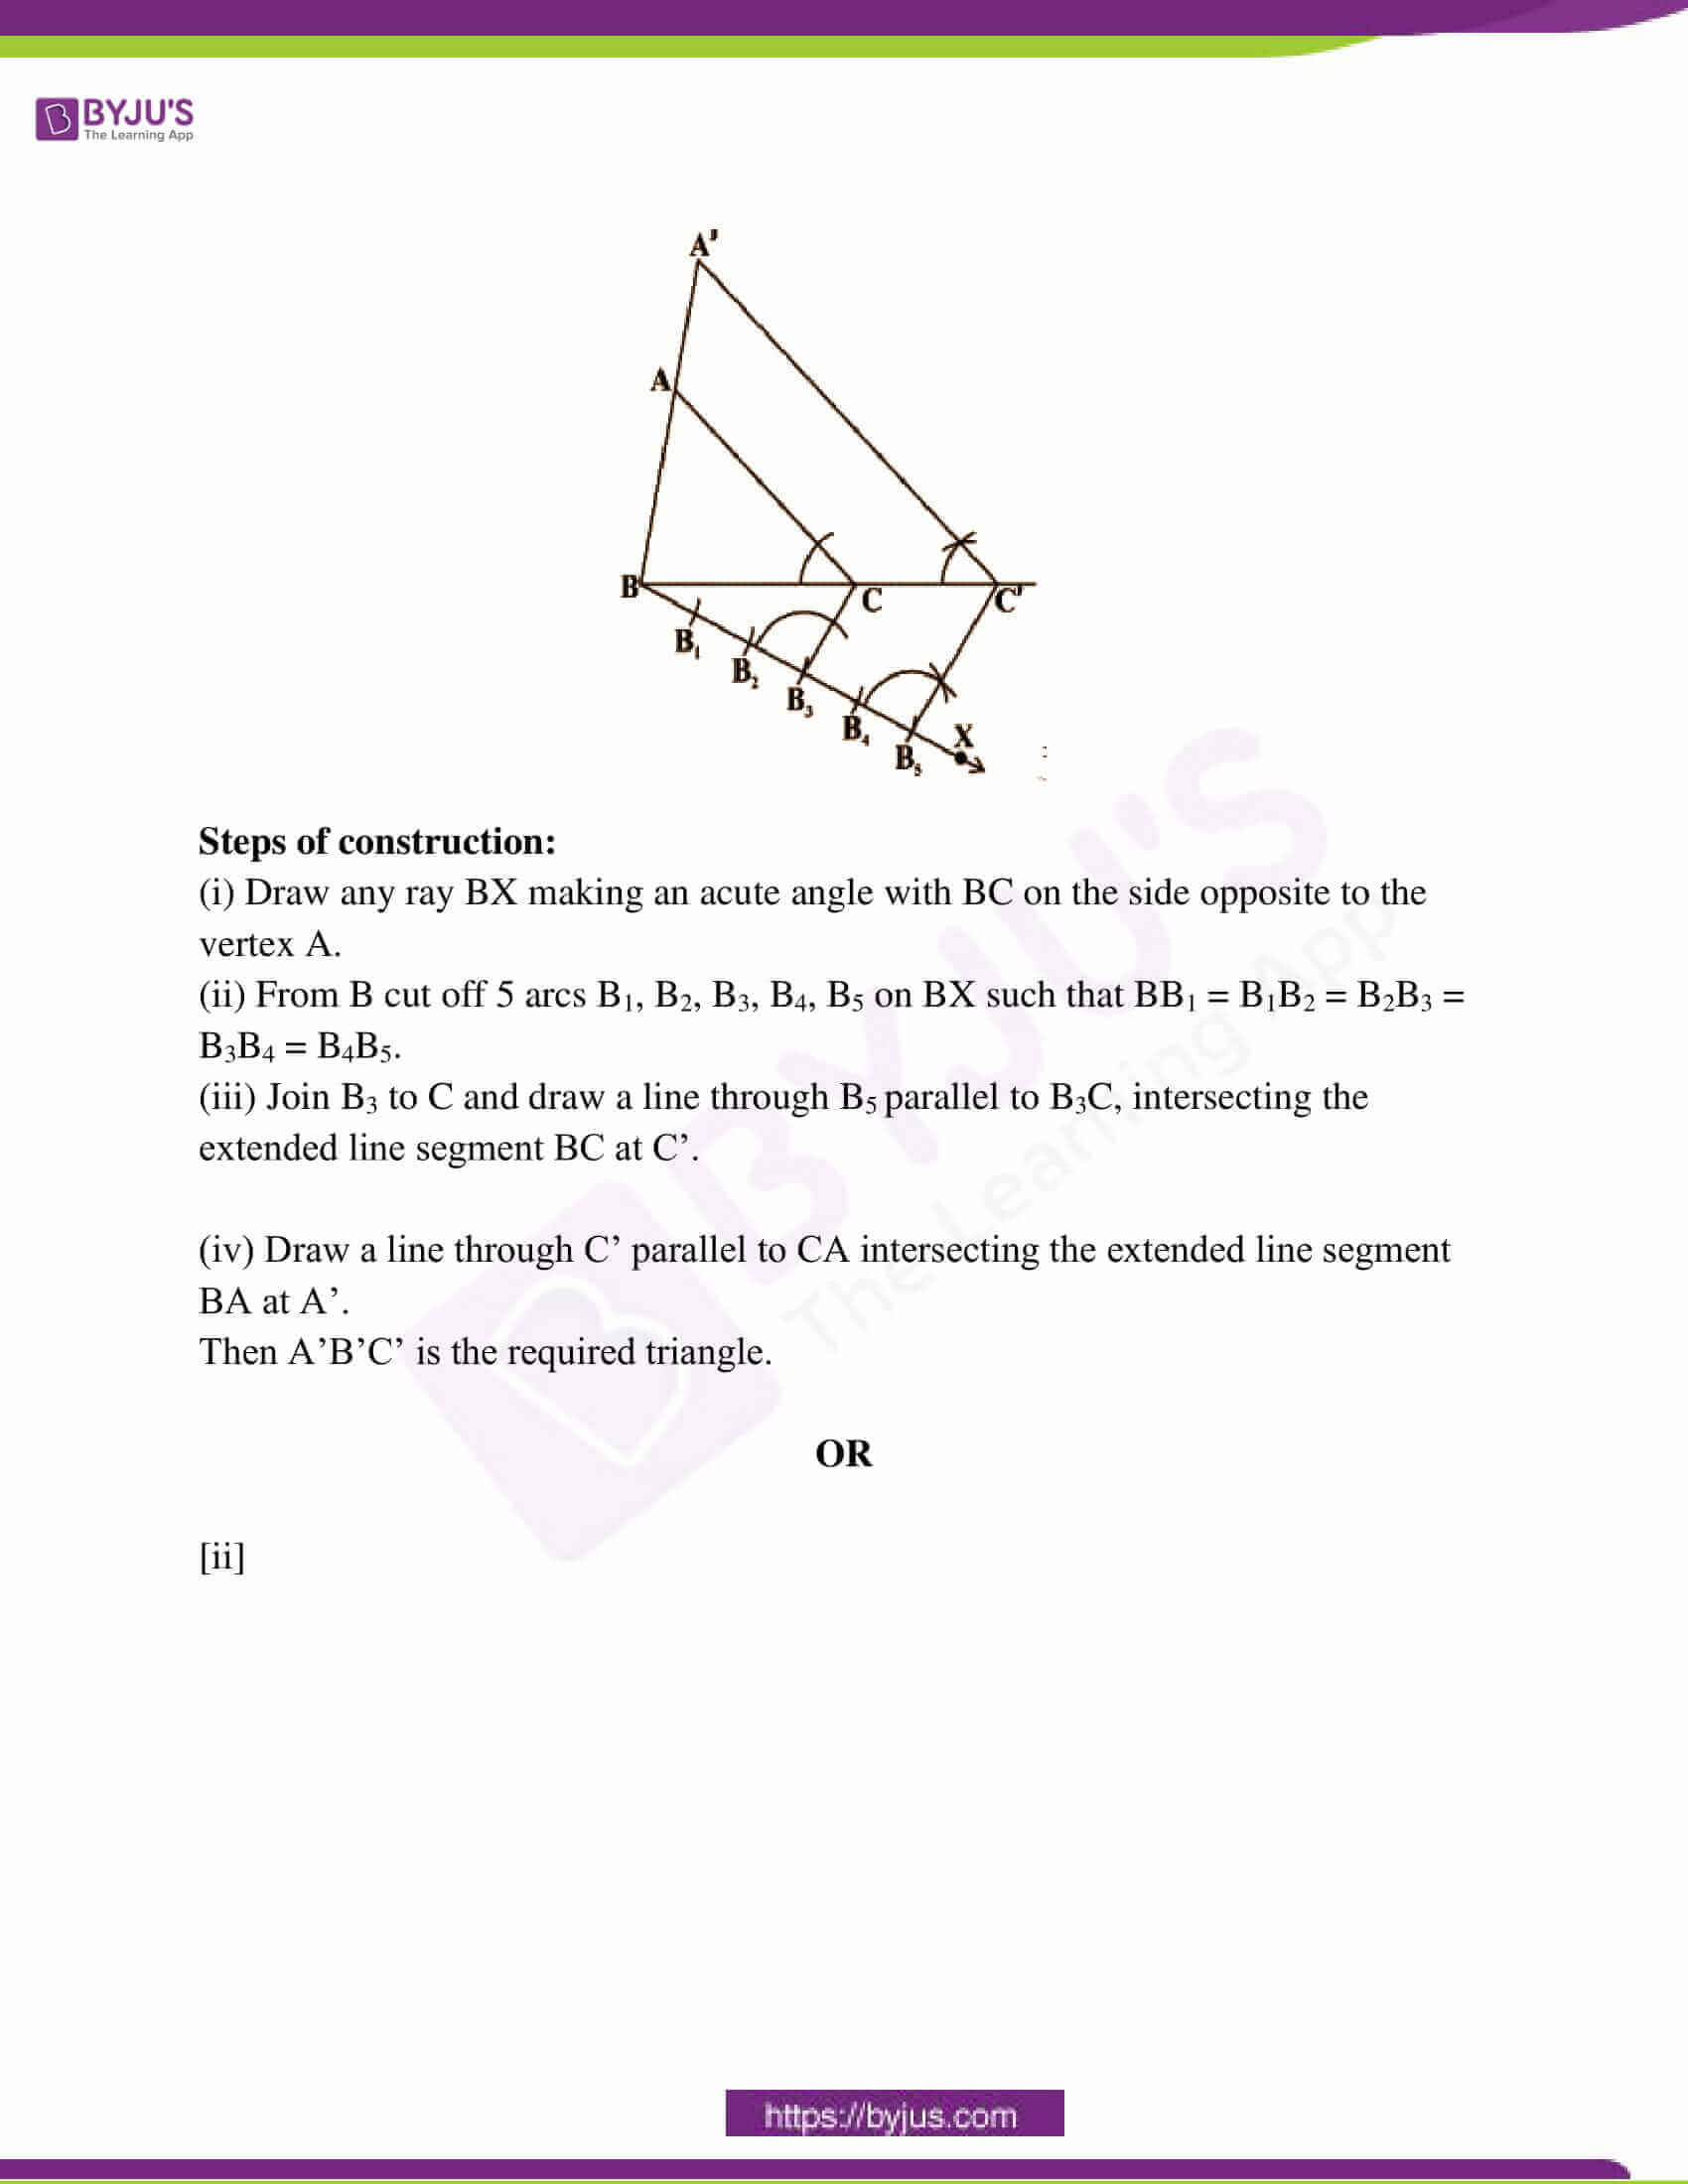 mp class 10 exam question paper with solutions march 2019 24